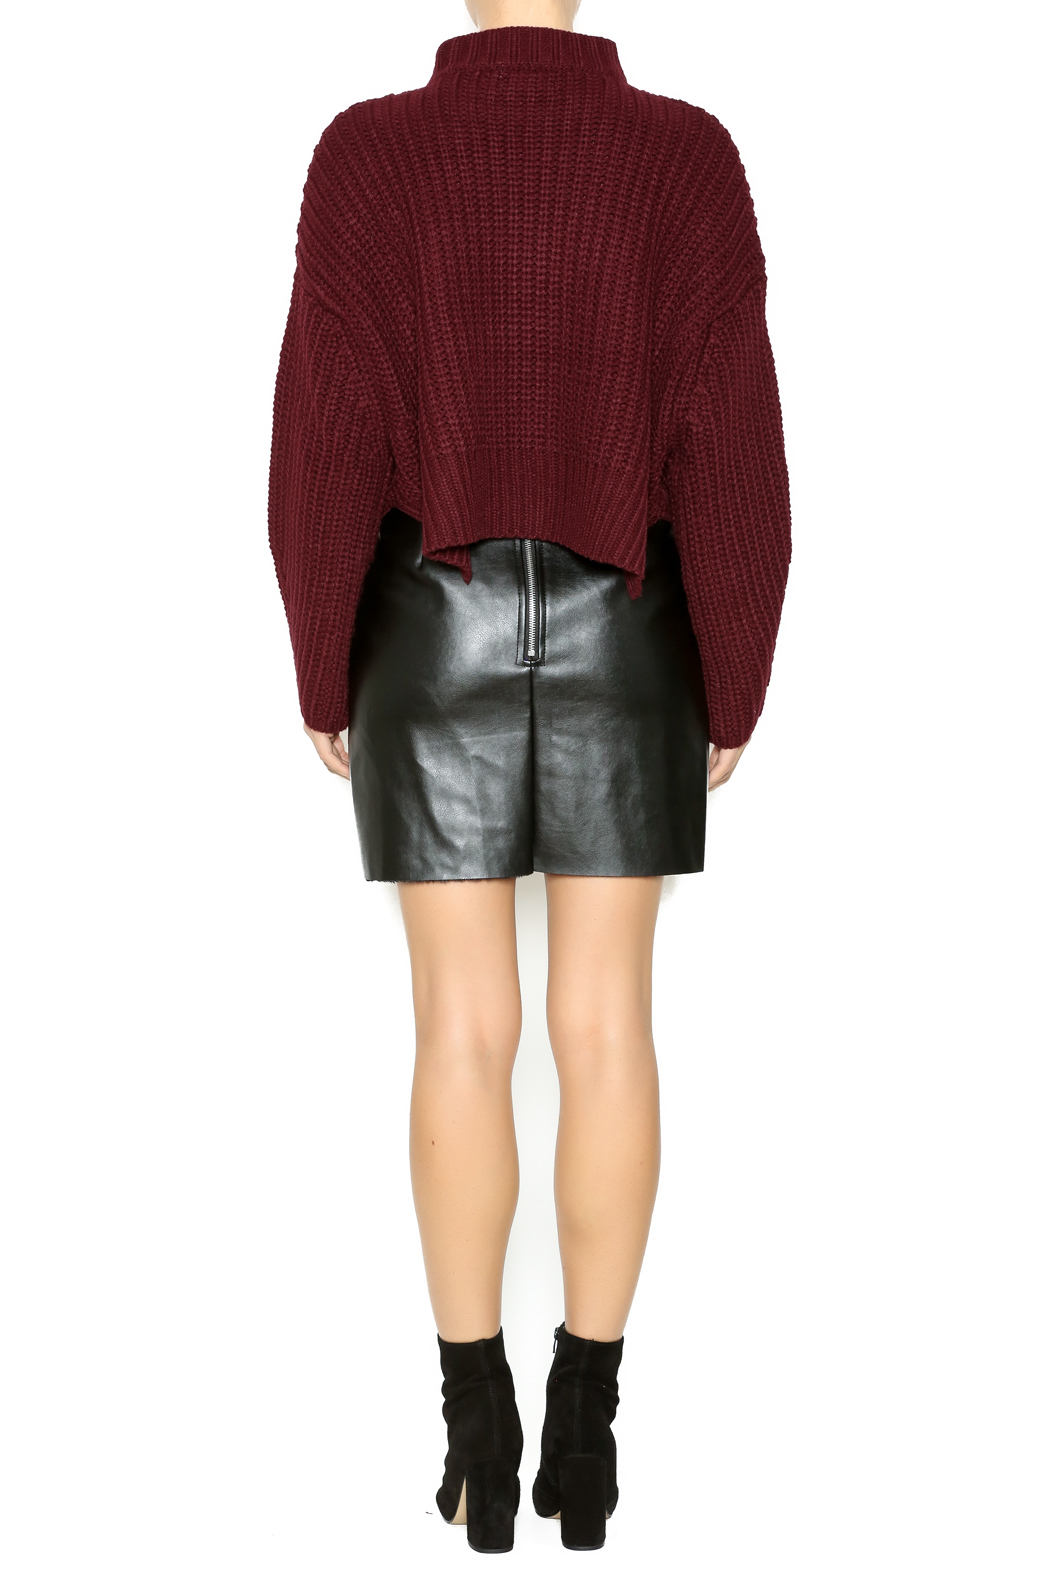 Gracia Short Sweater - Side Cropped Image